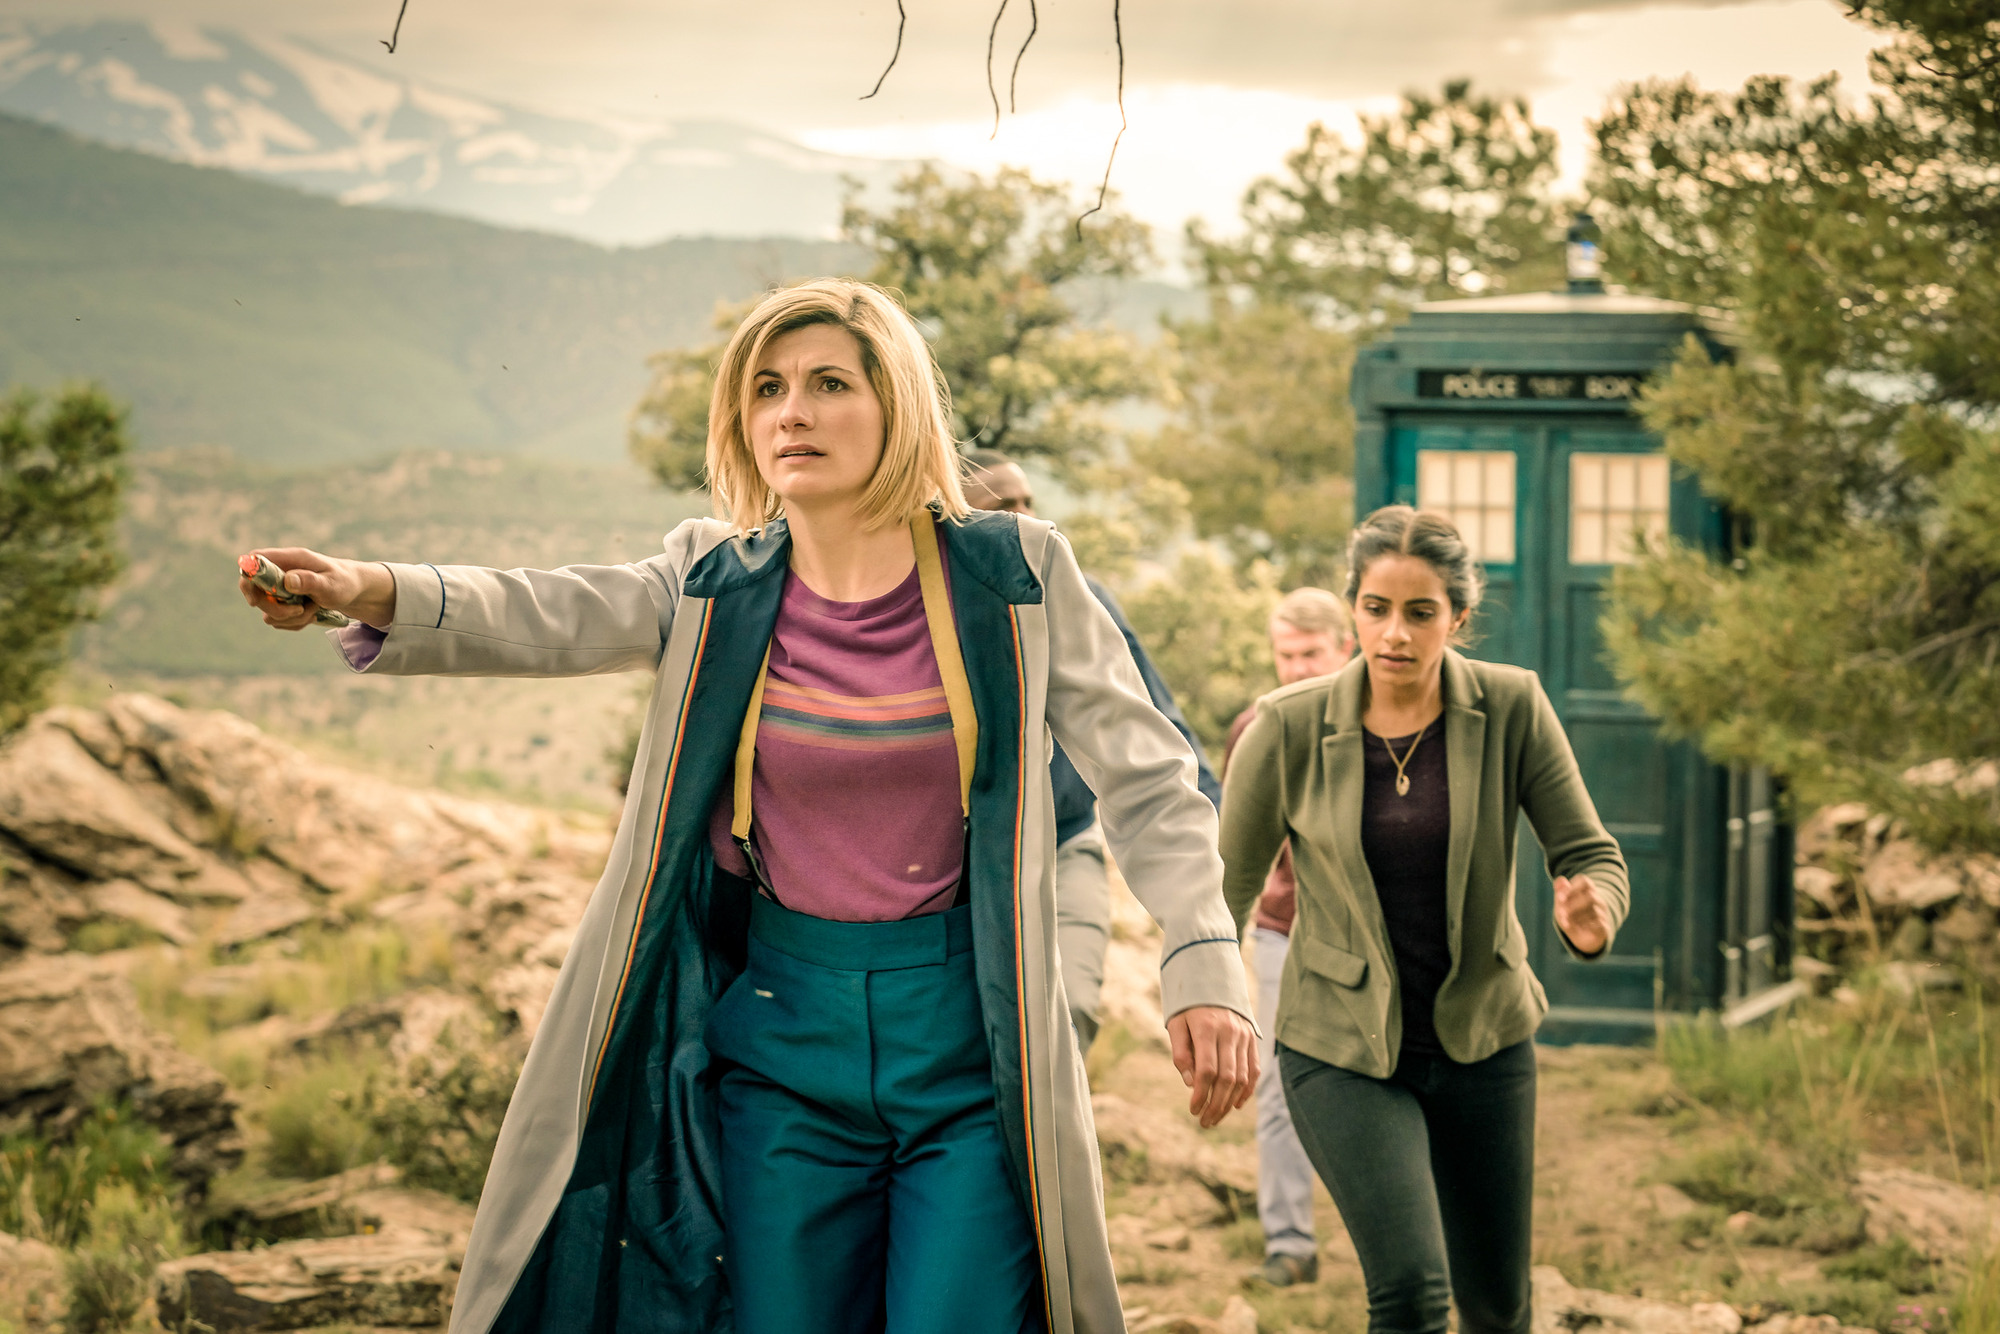 When is Doctor Who back with season 12 and will it be with the same cast?